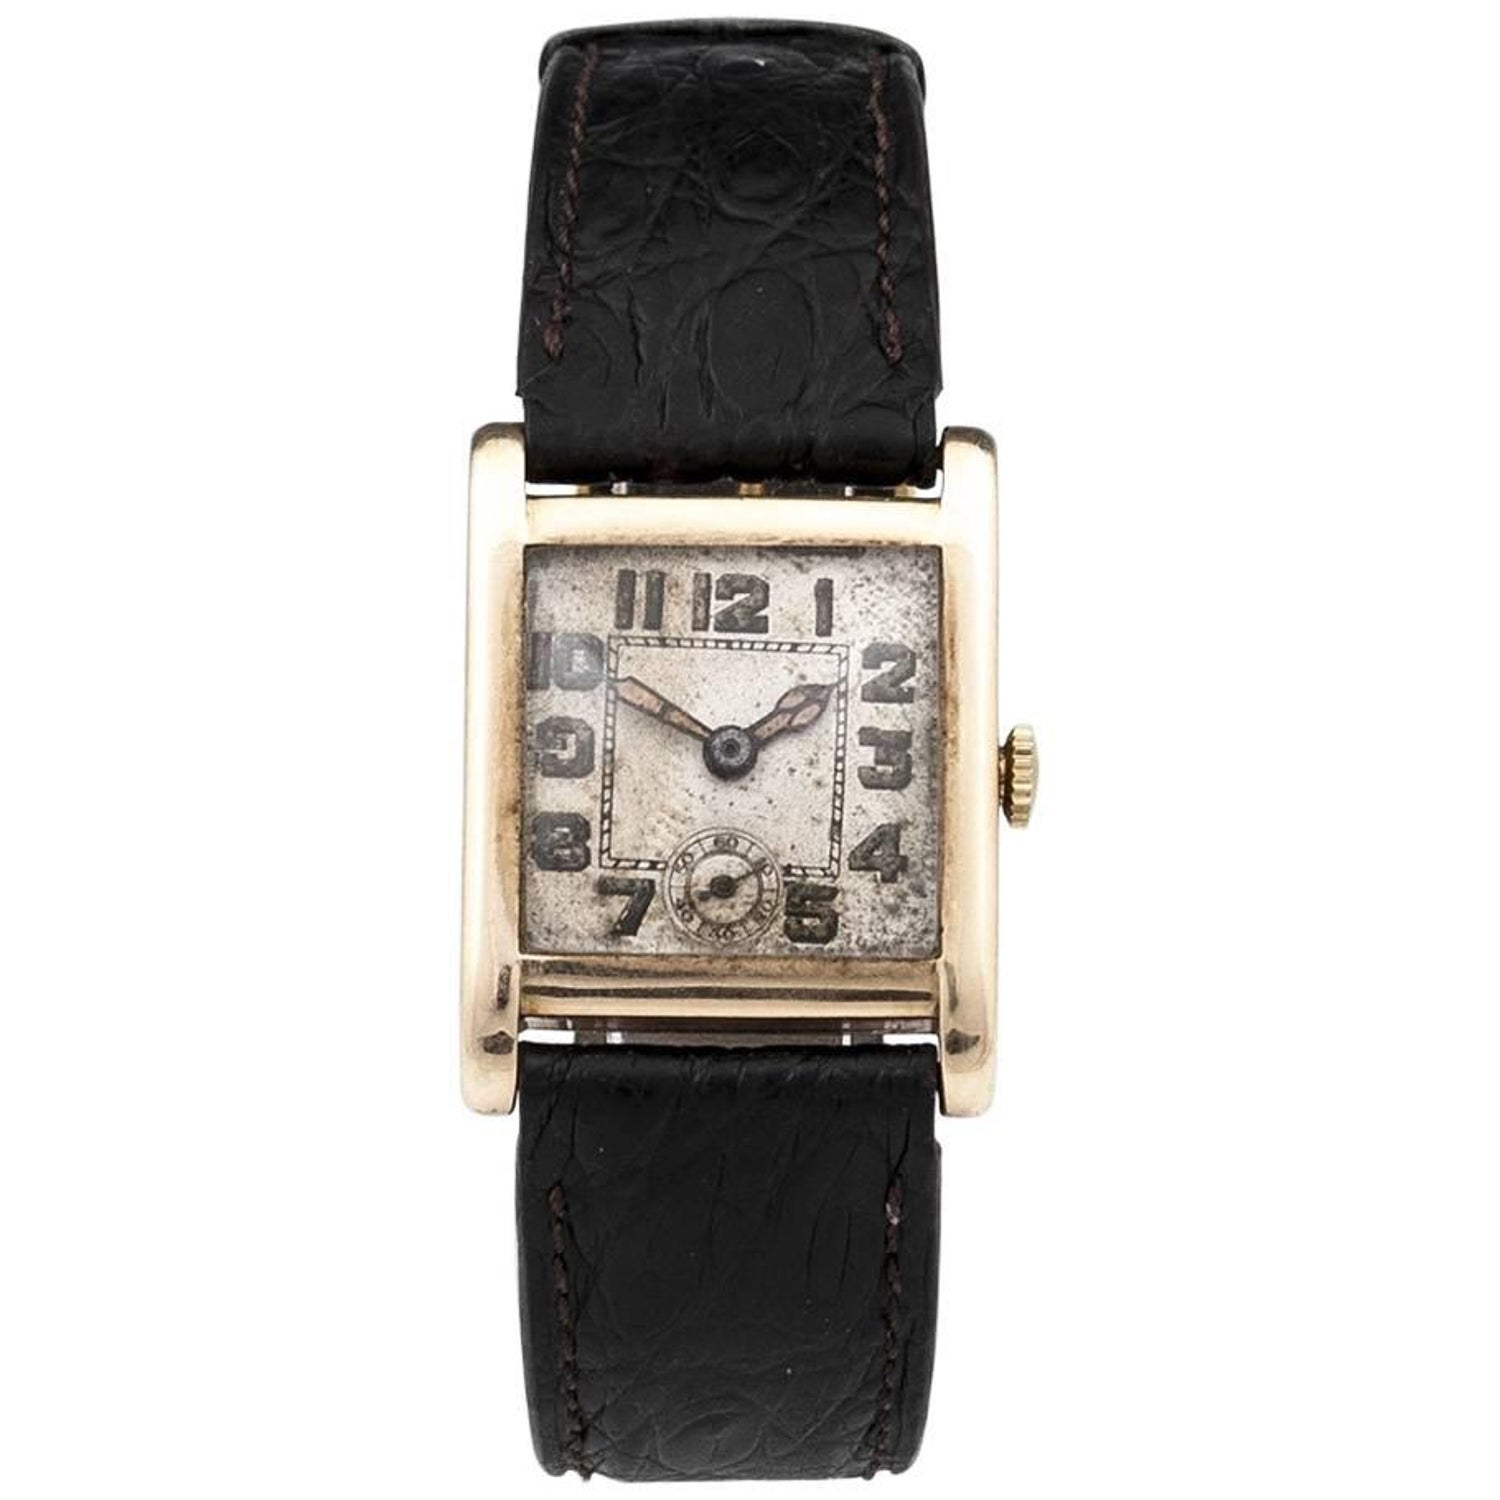 f5dd39419 Art Deco Gold Ovida Square Wrist Watch with Leather Strap For Sale at  1stdibs